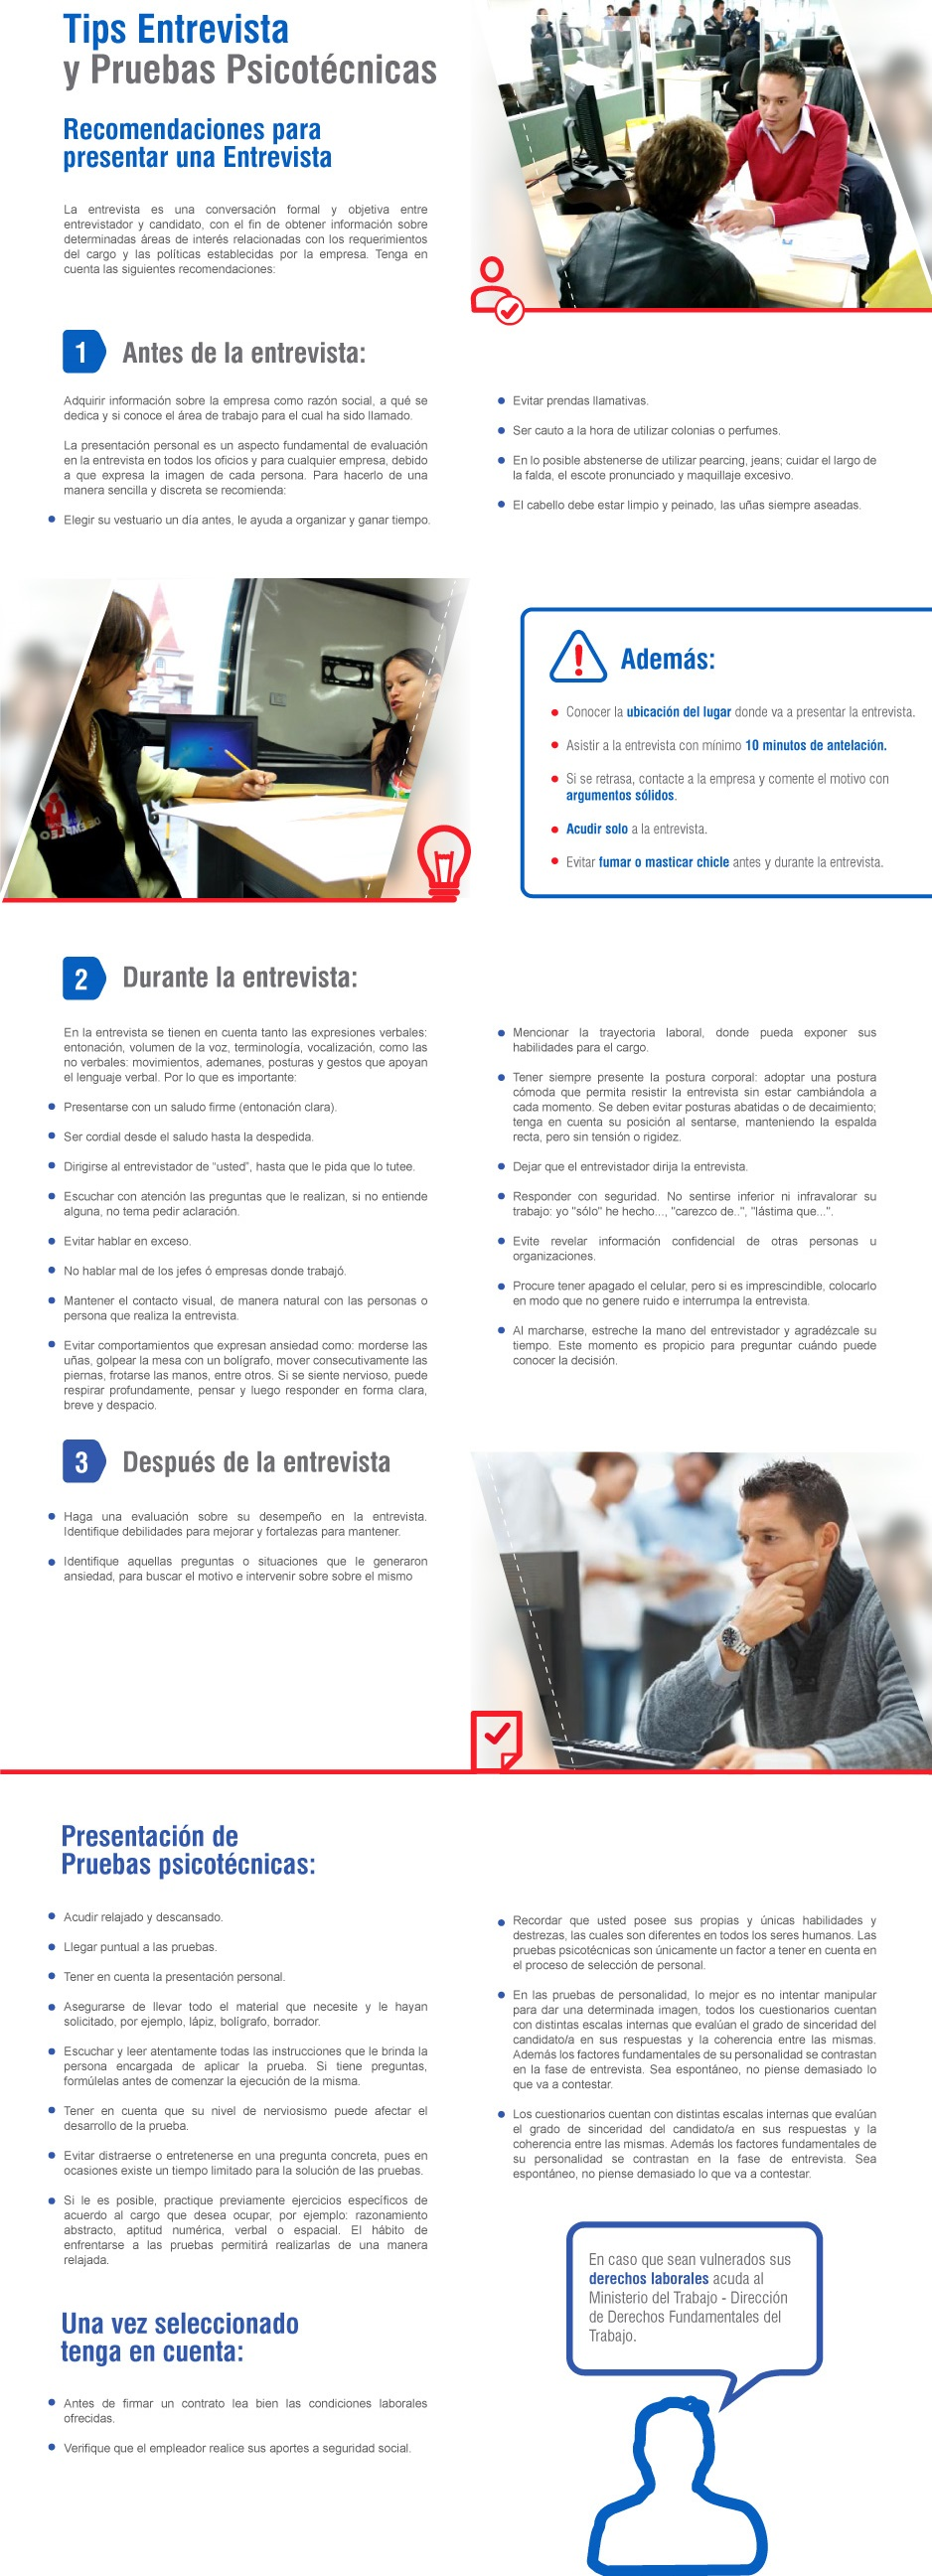 Web-APE-tips-entrevista-Previsual - copia.jpg